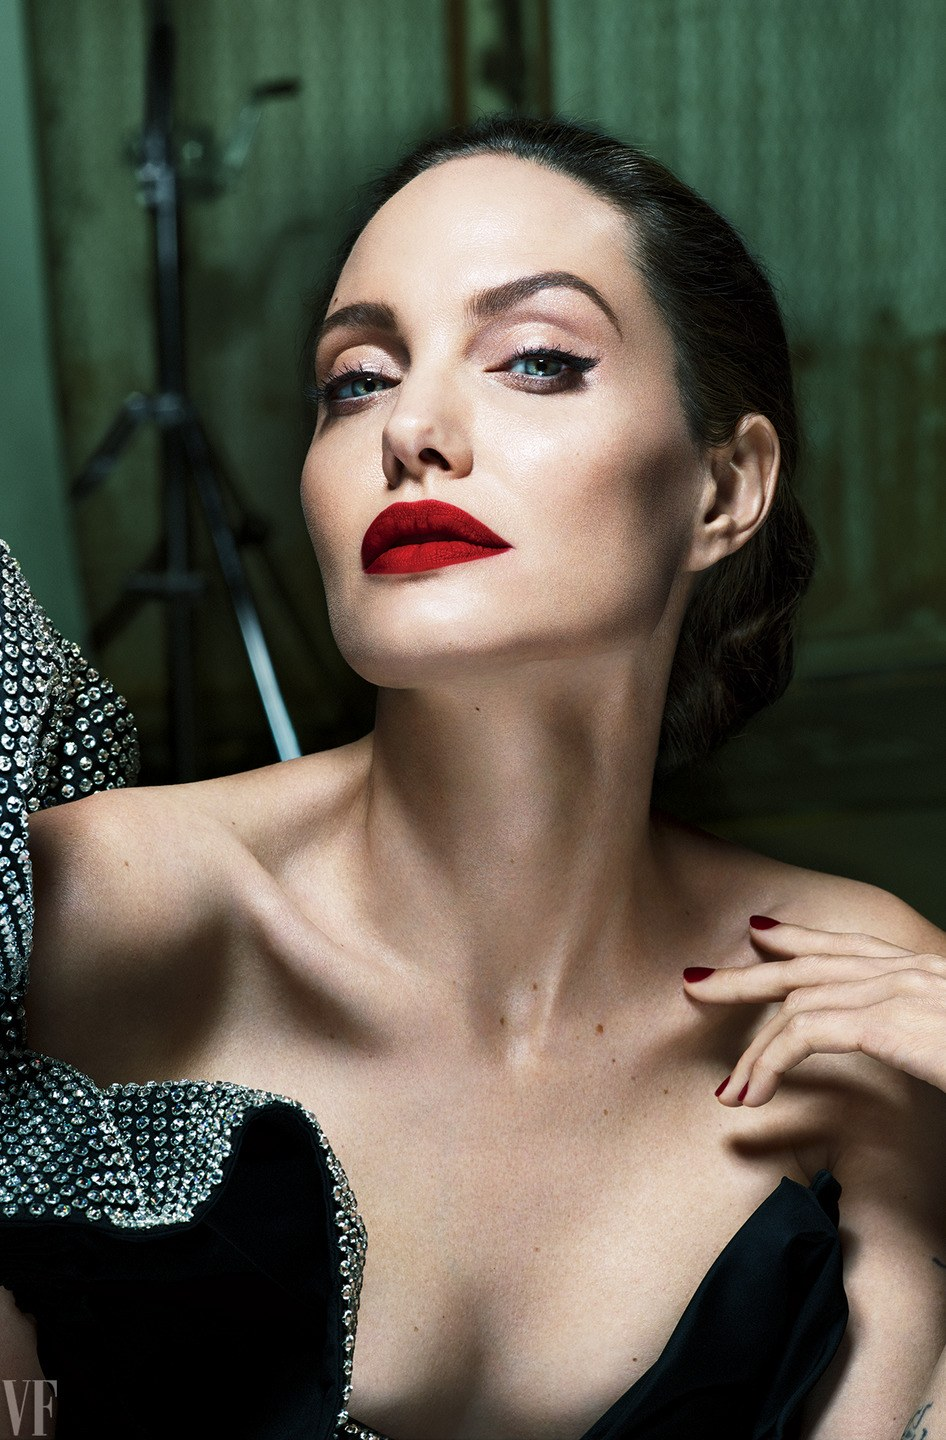 Angelina Jolie is a MALEFICENT Woman On 'Vanity Fair' Cover image